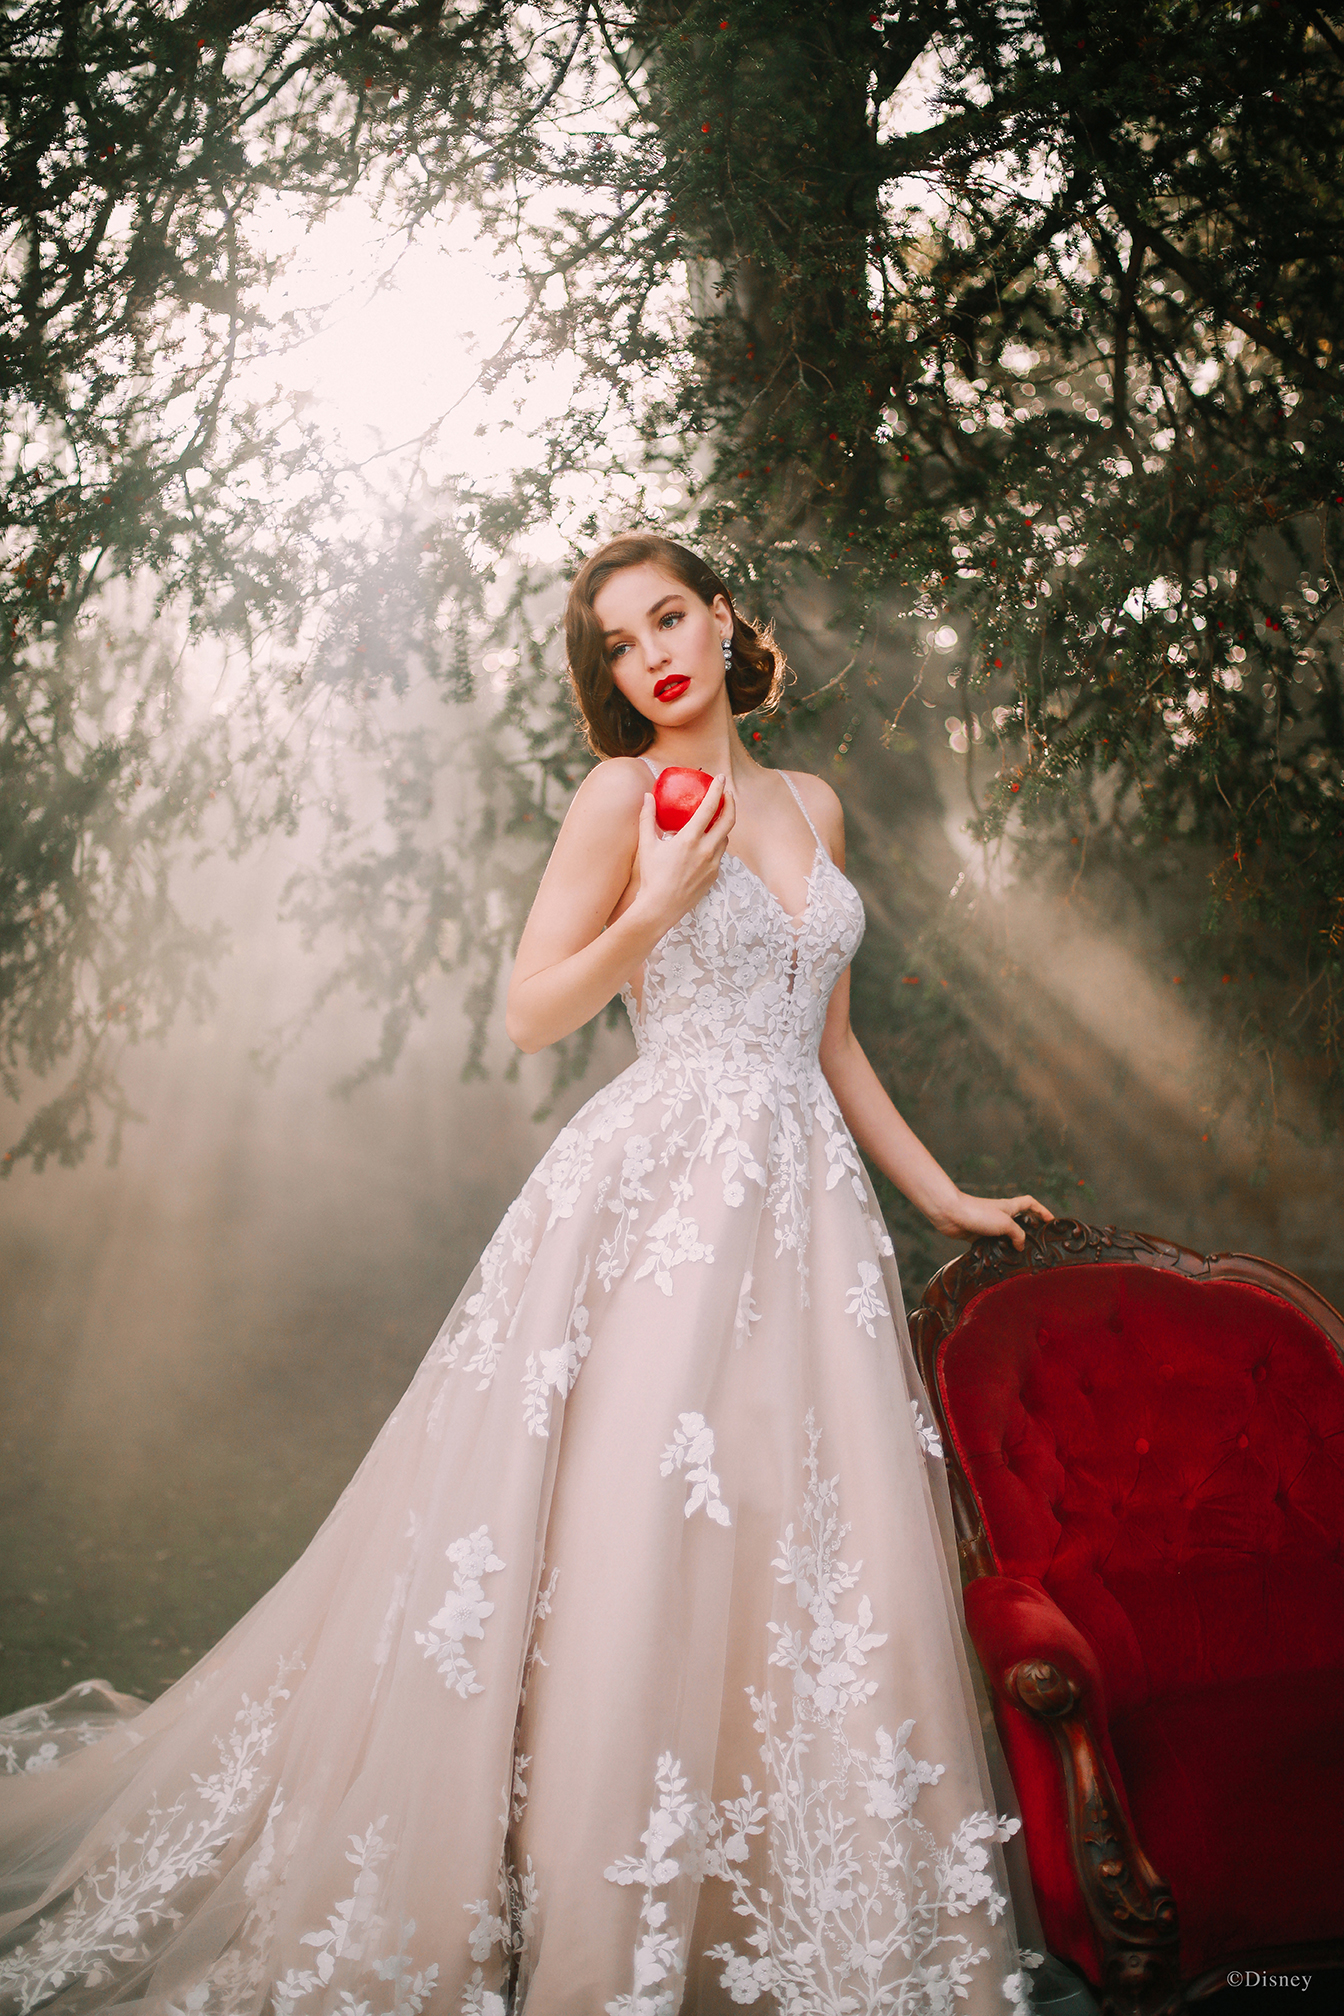 Capturing Snow White's gentle grace and beauty, this classic-inspired ballgown features a bouquet of 'apple' blossoms on the bodice that gracefully cascade down the skirt and cluster at the hemline.